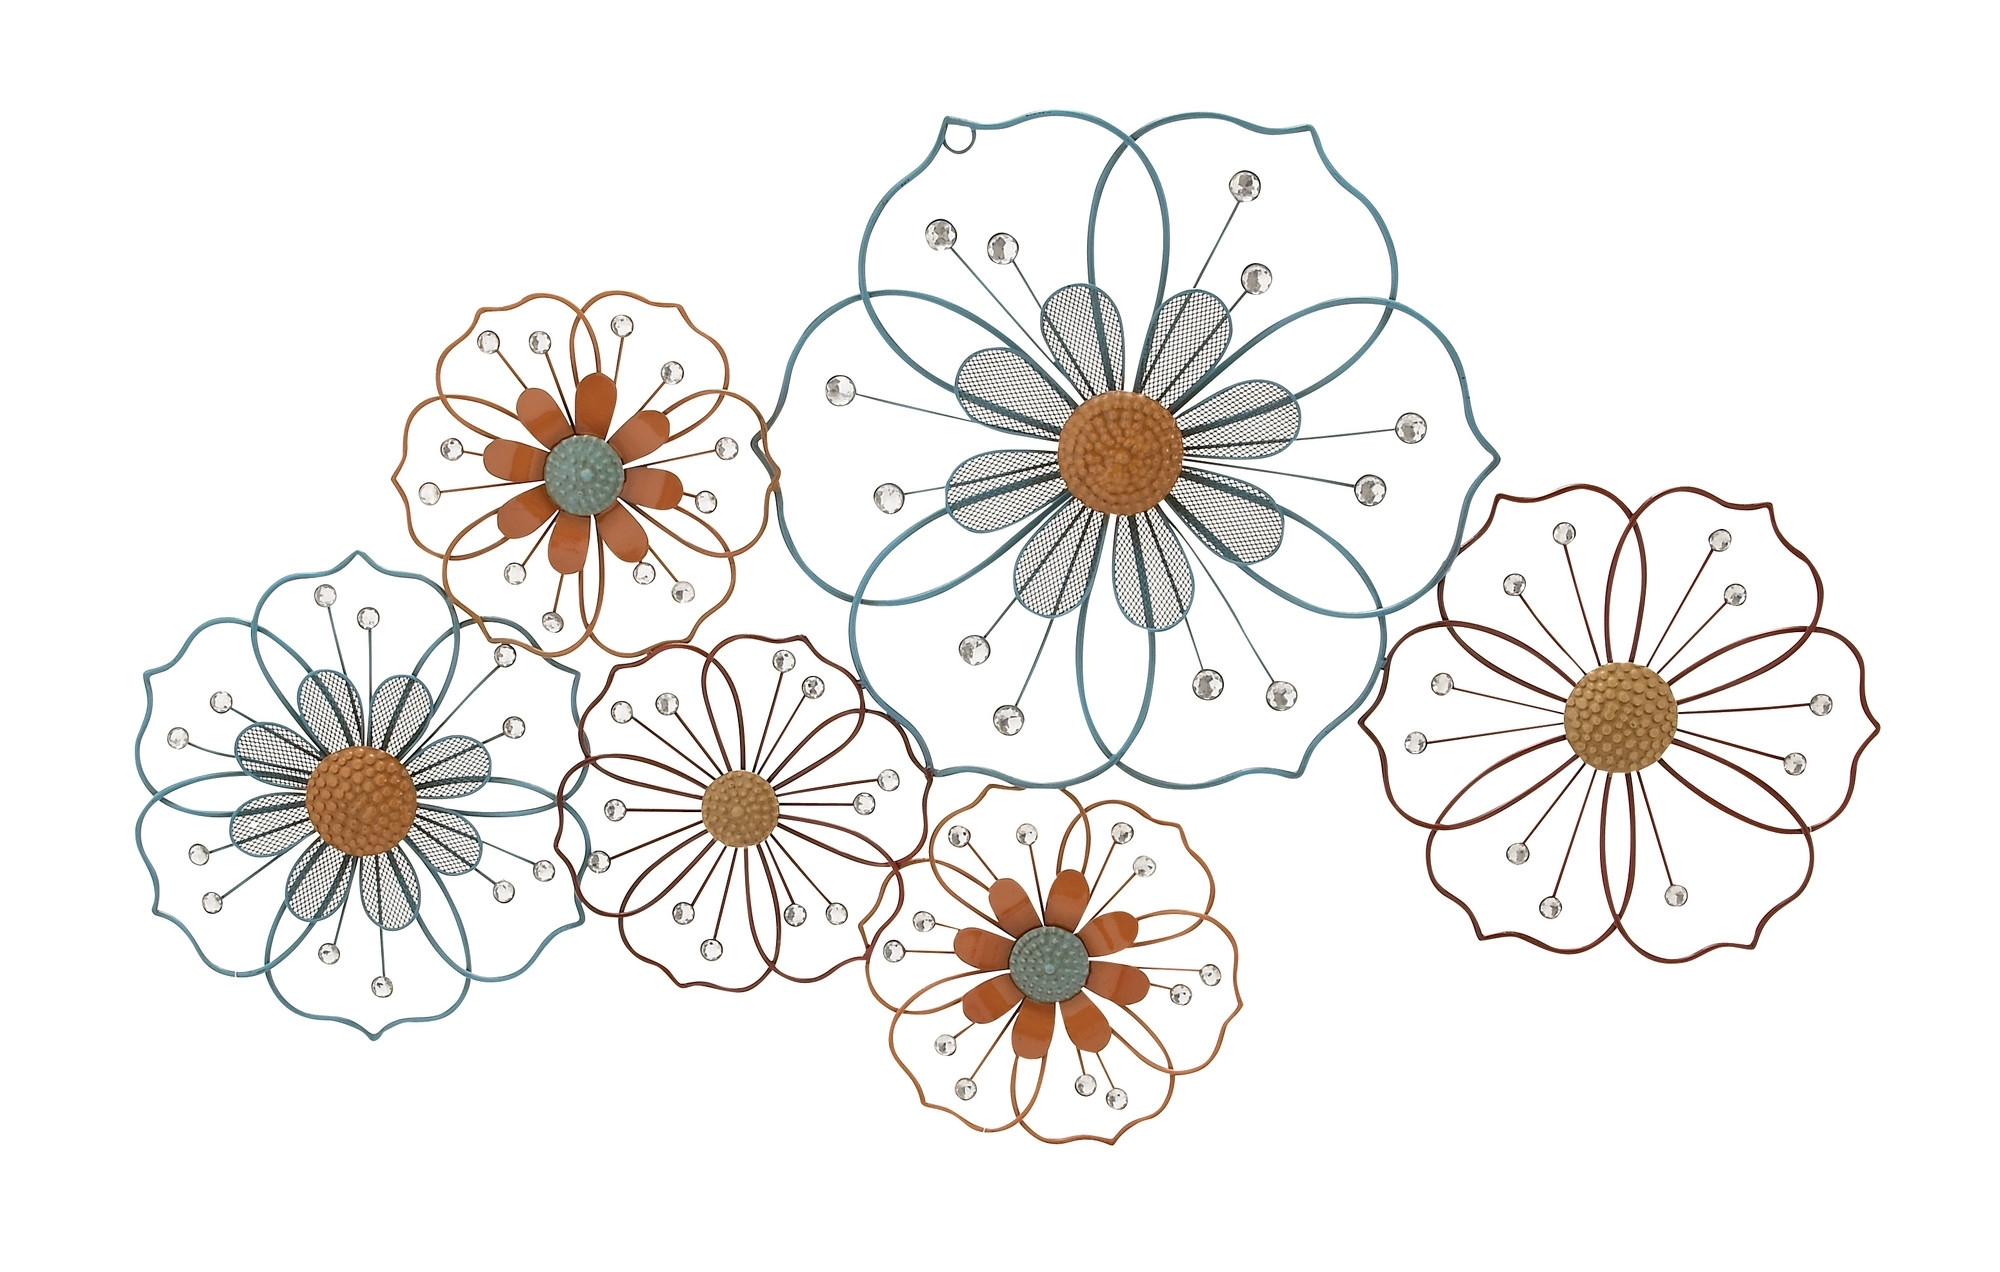 Large Flower Silhouettes – Floral Metal Wall Art With Regard To Trendy Metal Flower Wall Art (View 8 of 15)